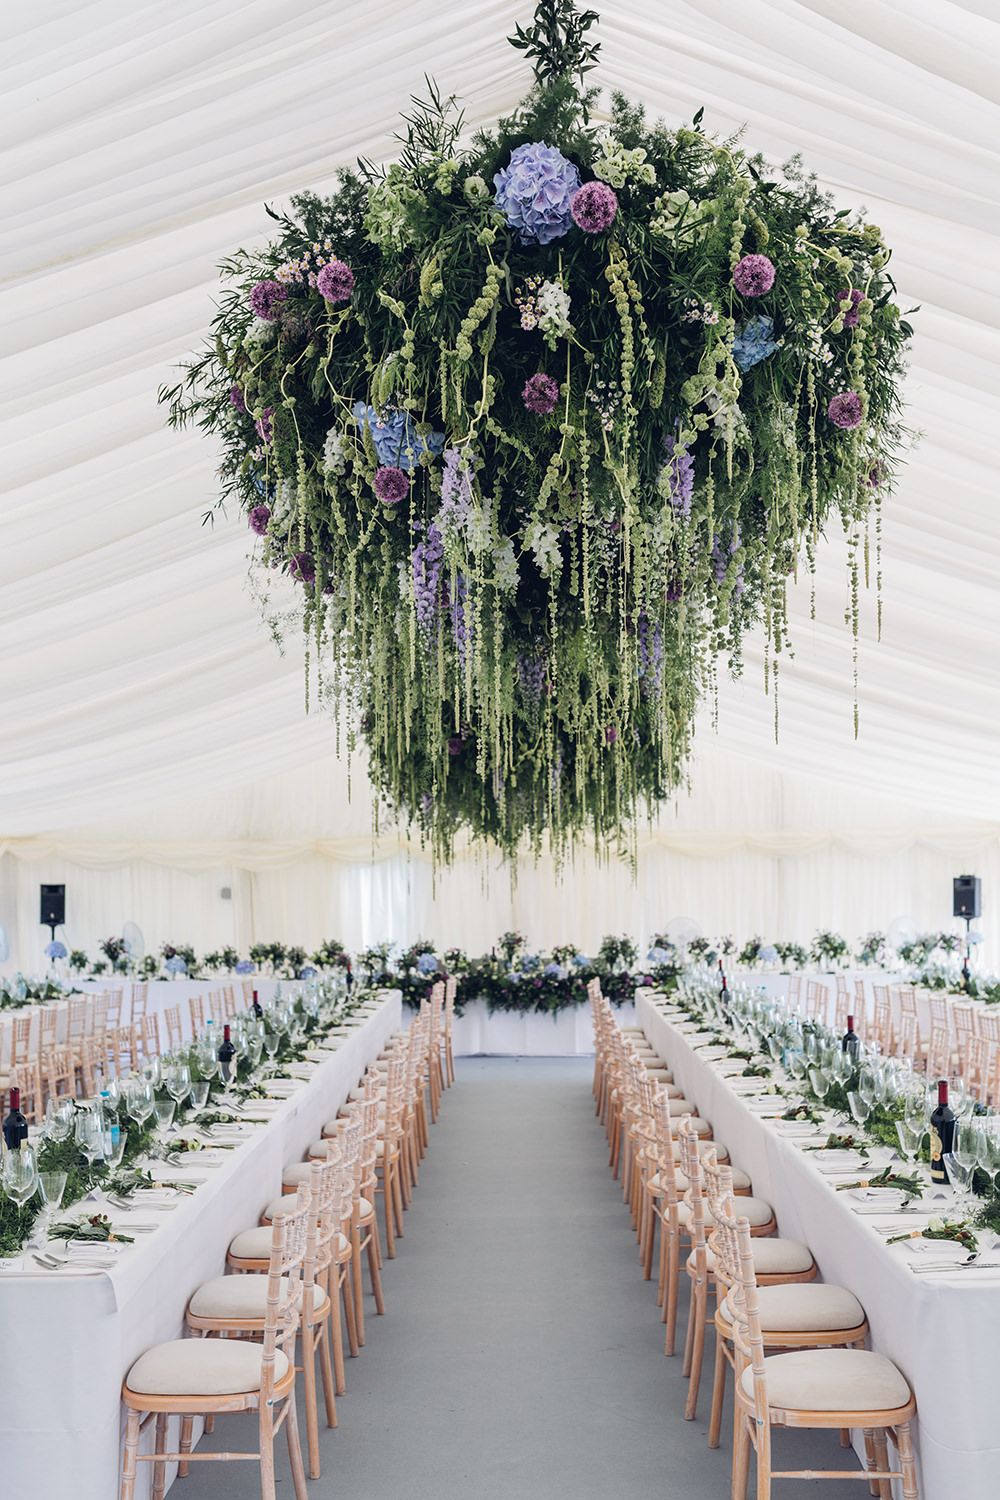 Woodland Marquee Reception with Hanging Floral Arrangements by Amie Bone Flowers